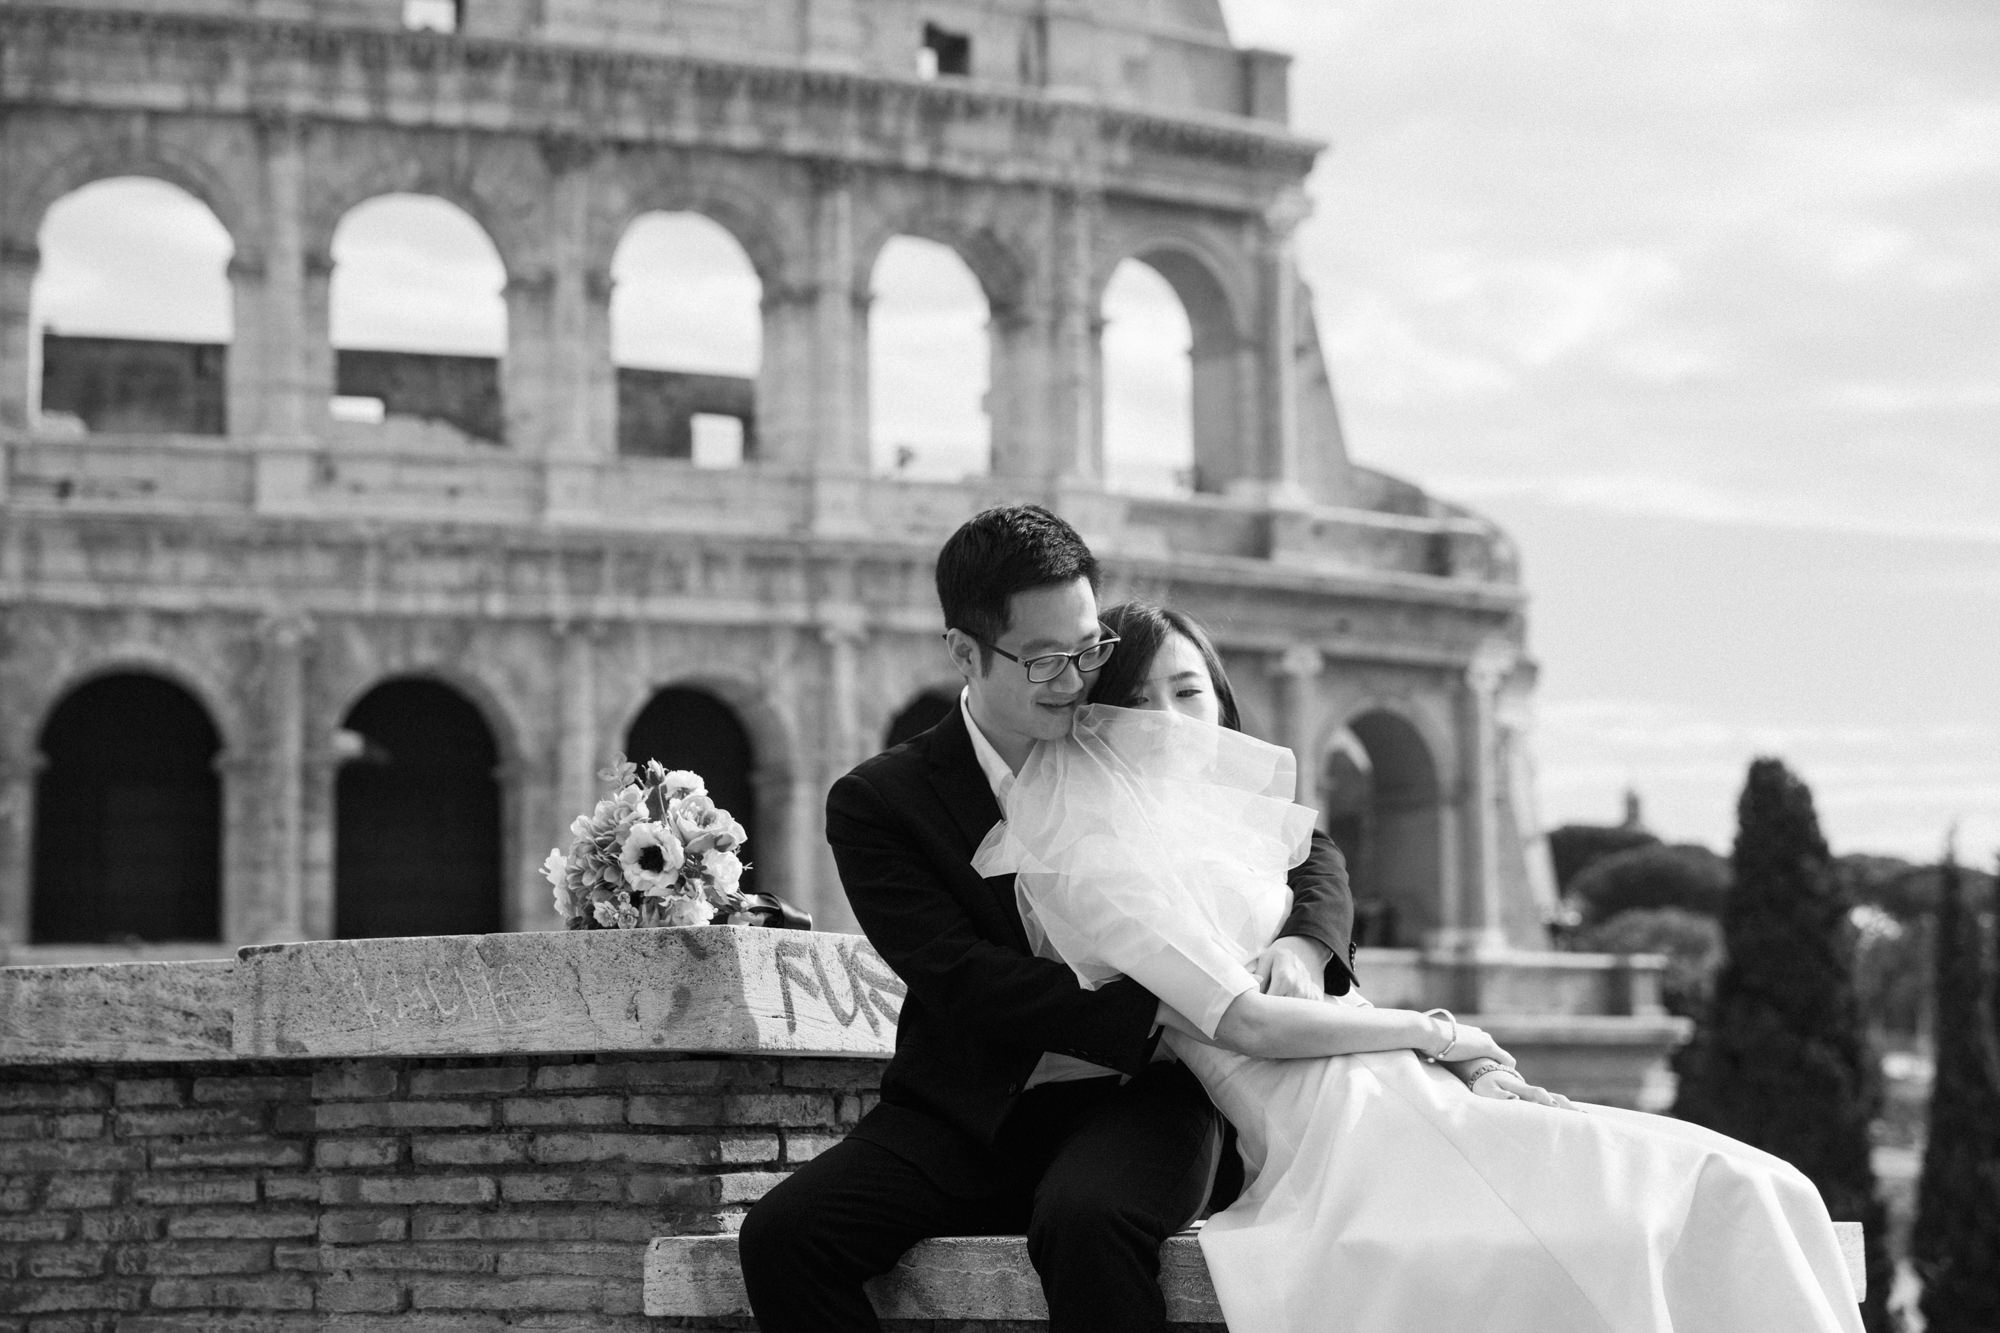 roman holiday prewedding   rome, italy